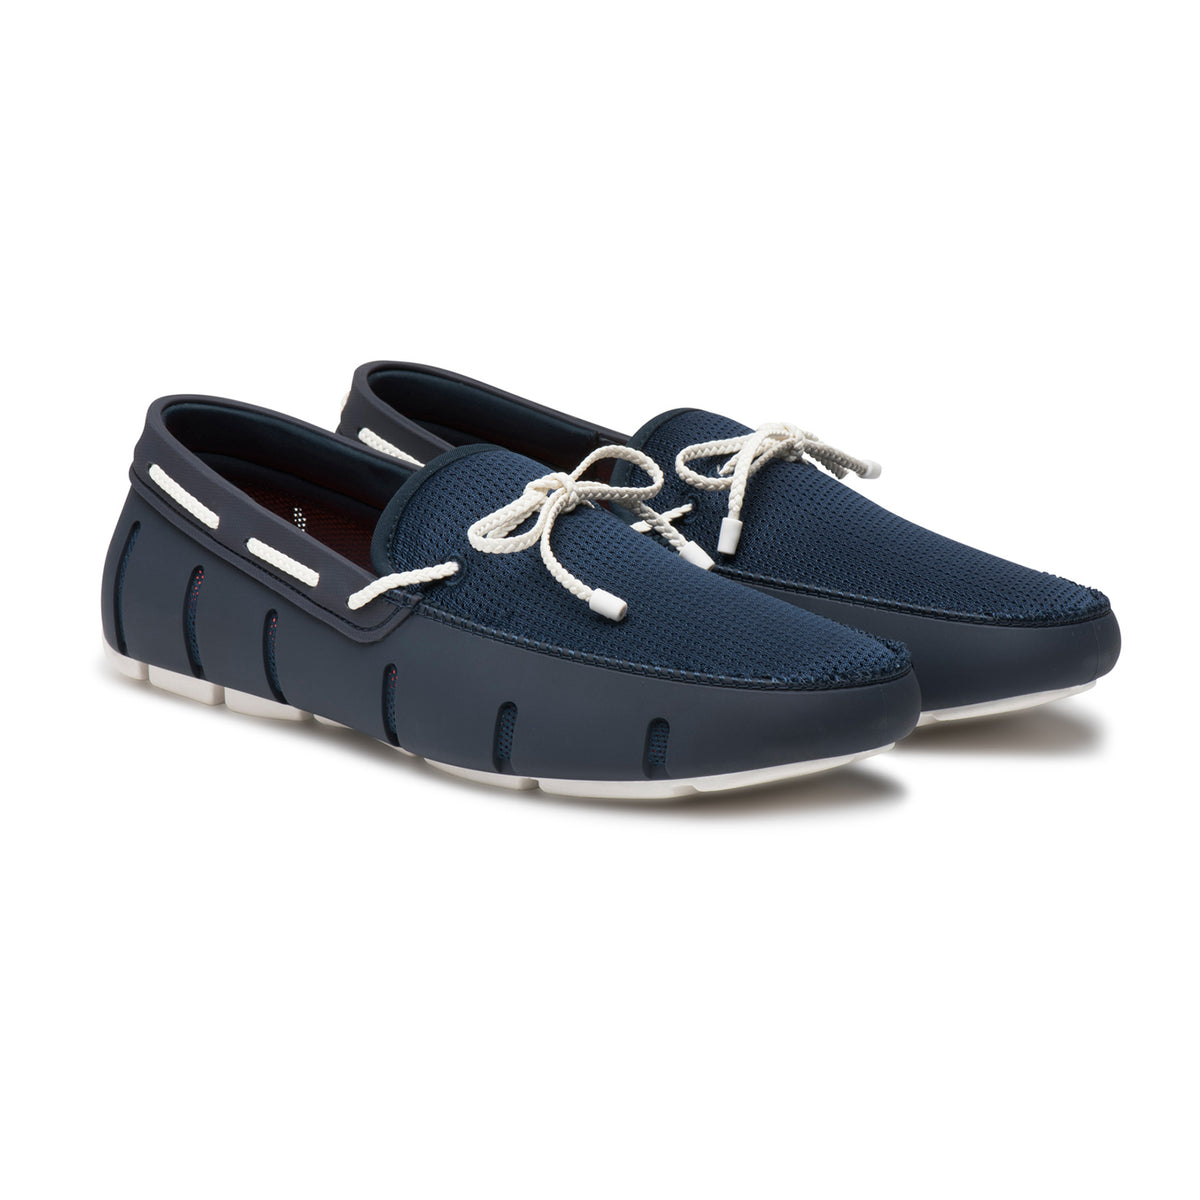 Braided Lace Loafer - background::white,variant::Navy/White